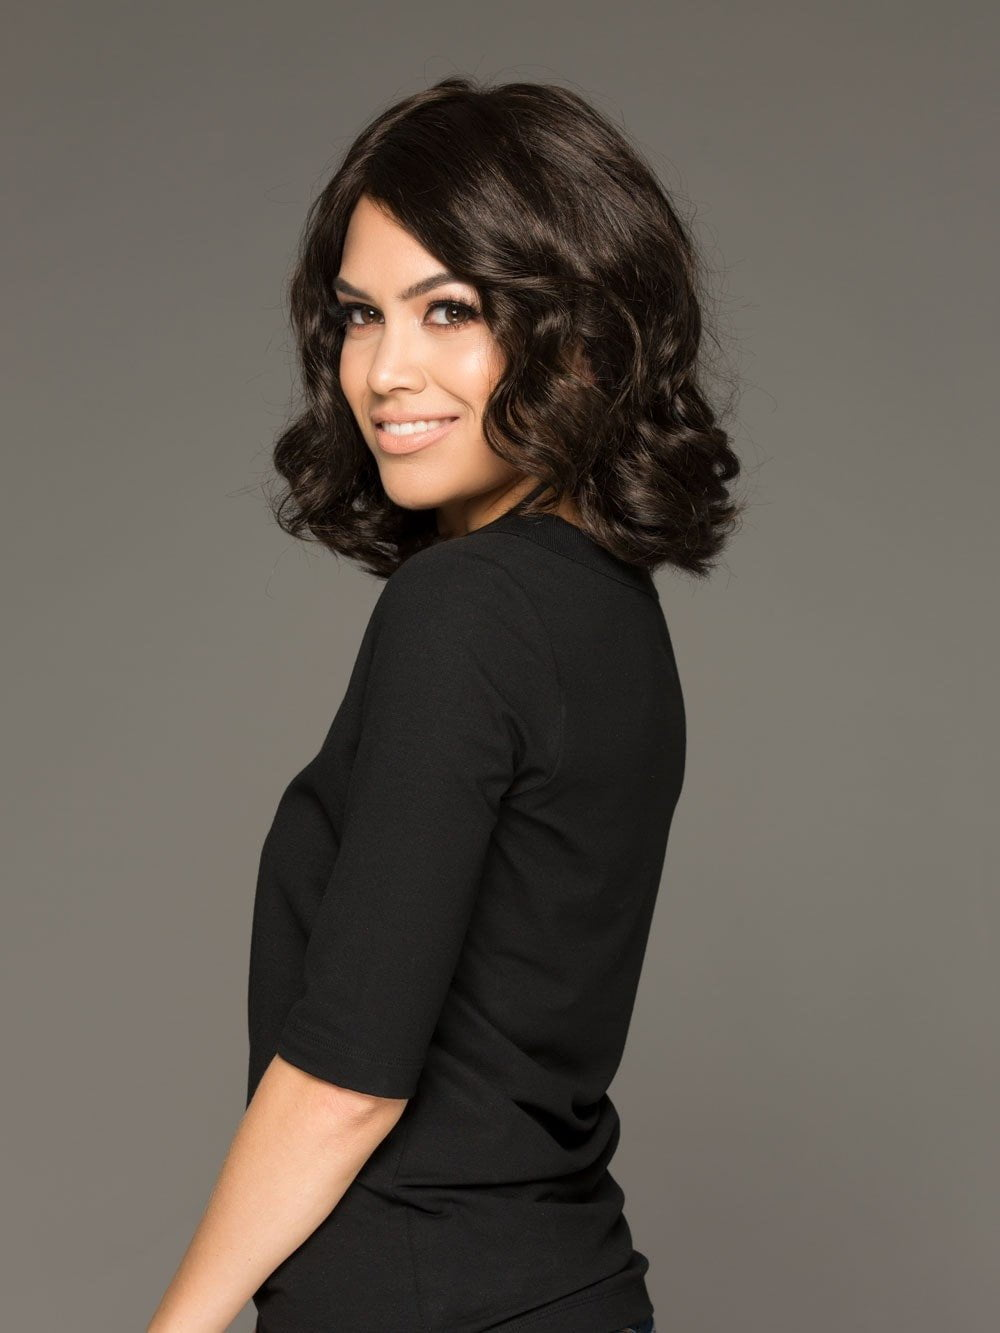 Envy Brittaney is a loosely waved, long bob wig that's glamorous and ready to wear